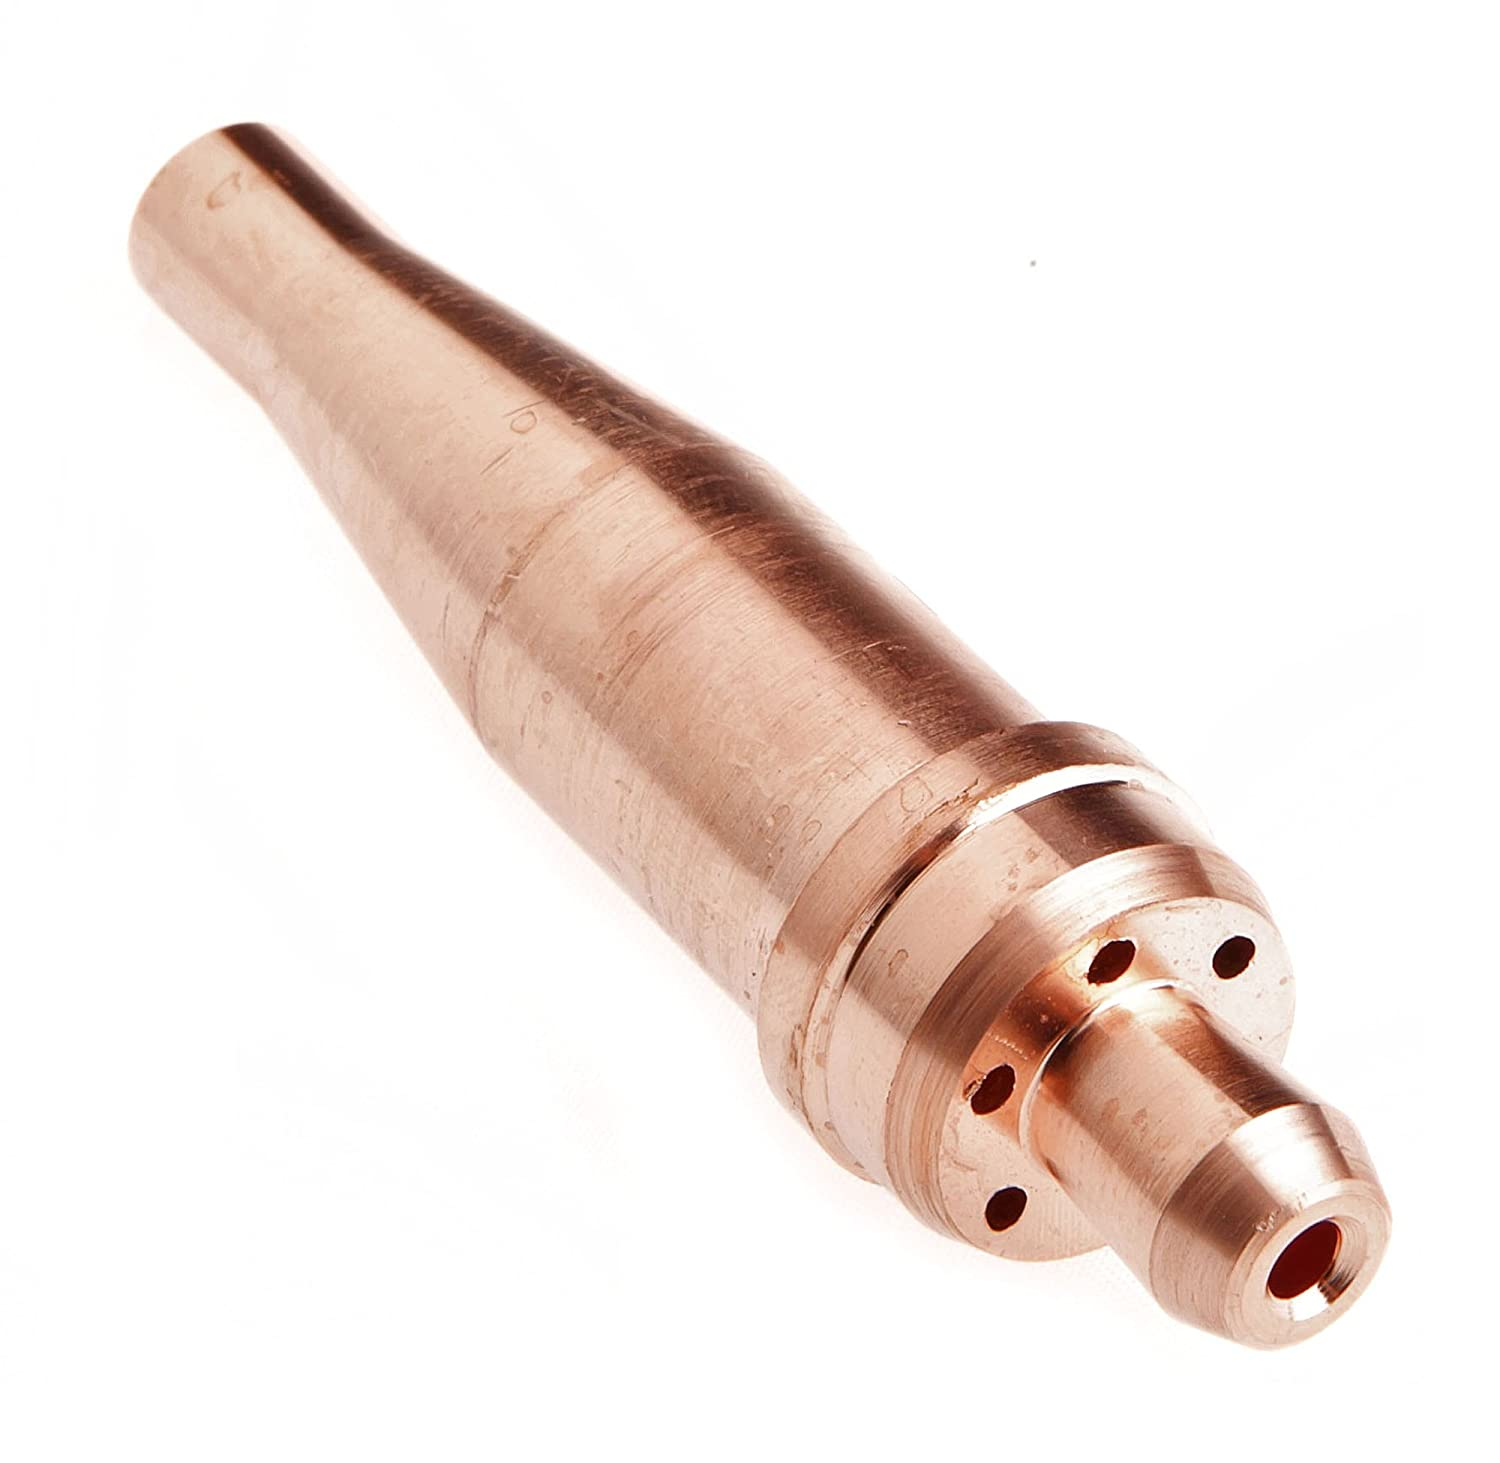 Victor Style Oxygen Acetylene Forney 60465 Cutting Tip Size 3 3-1-101 Heavy Duty